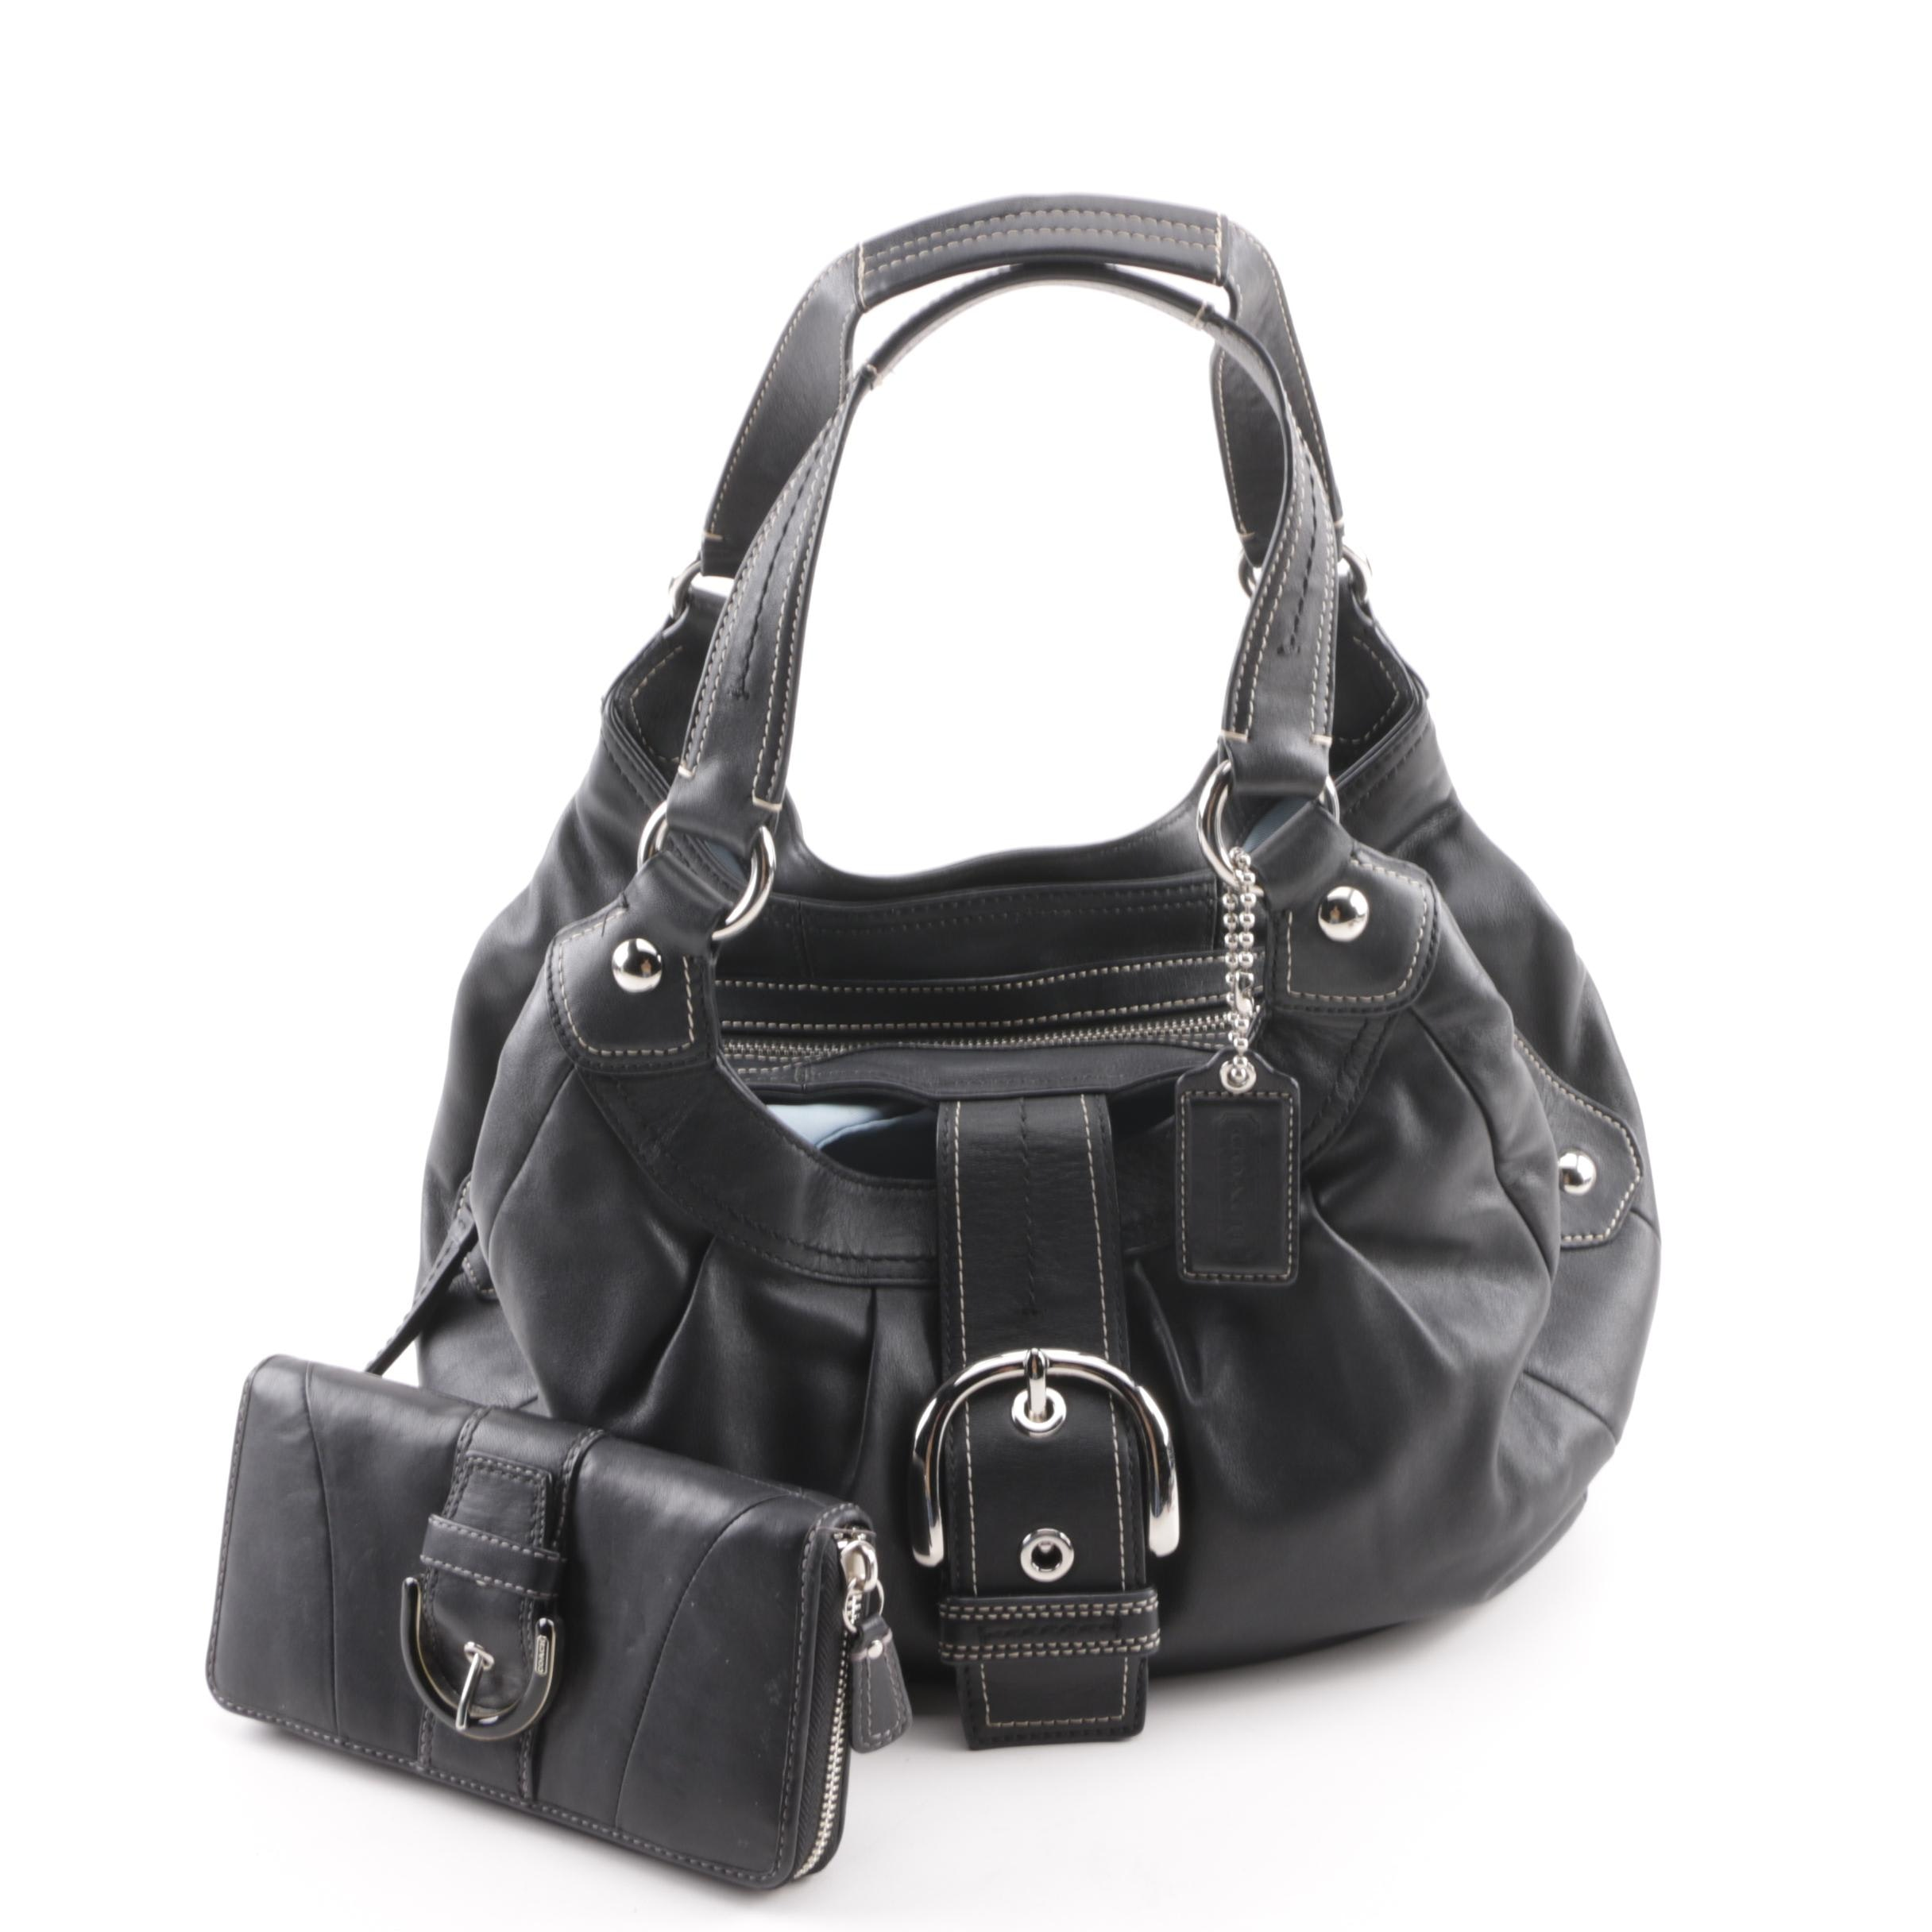 Coach Soho Black Leather Hobo Bag and Black Leather Wallet